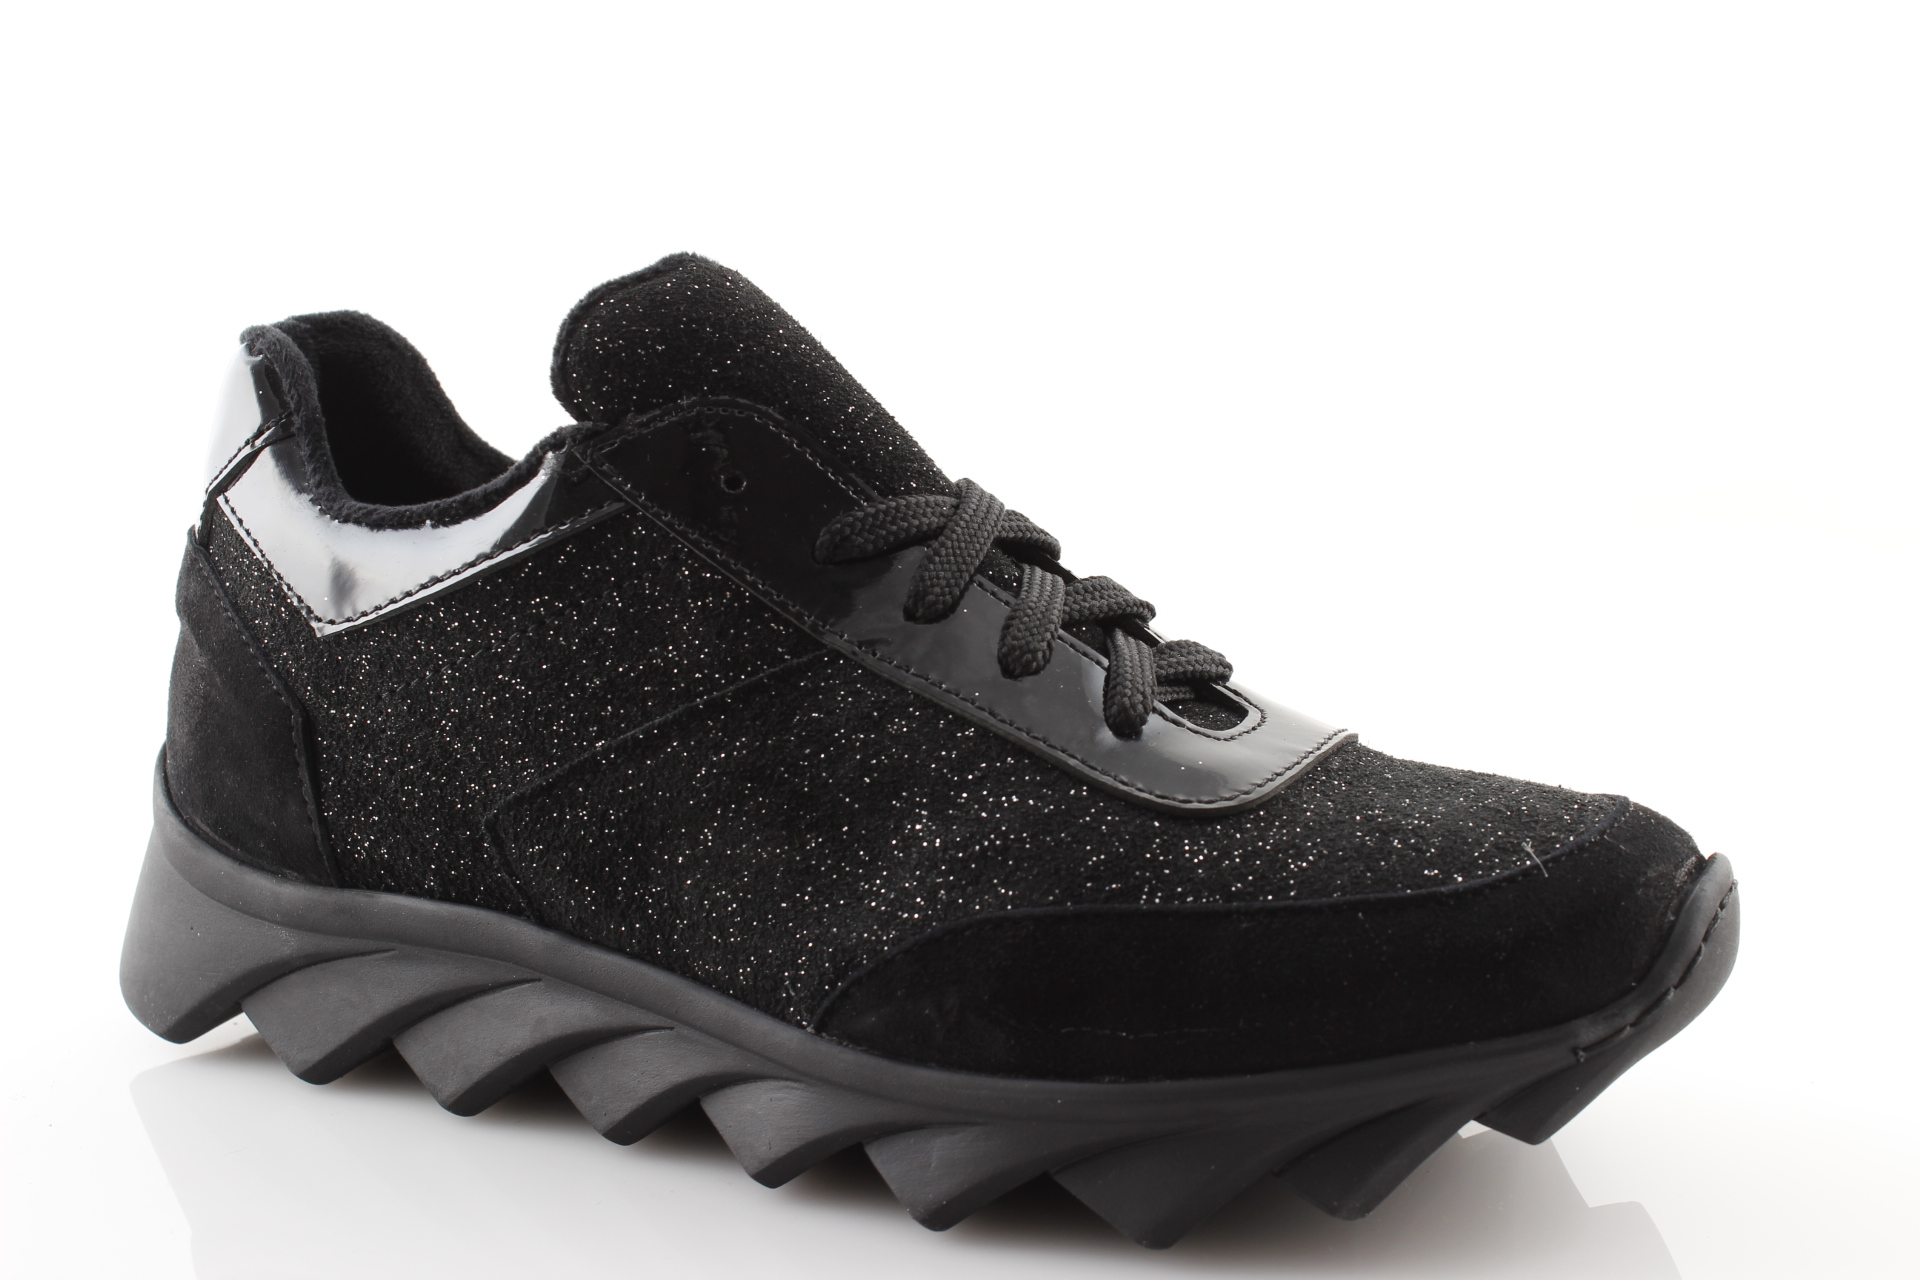 Détails sur Chaussures Femme Baskets Noir Hiver Made IN Italy Cuir avec Strass